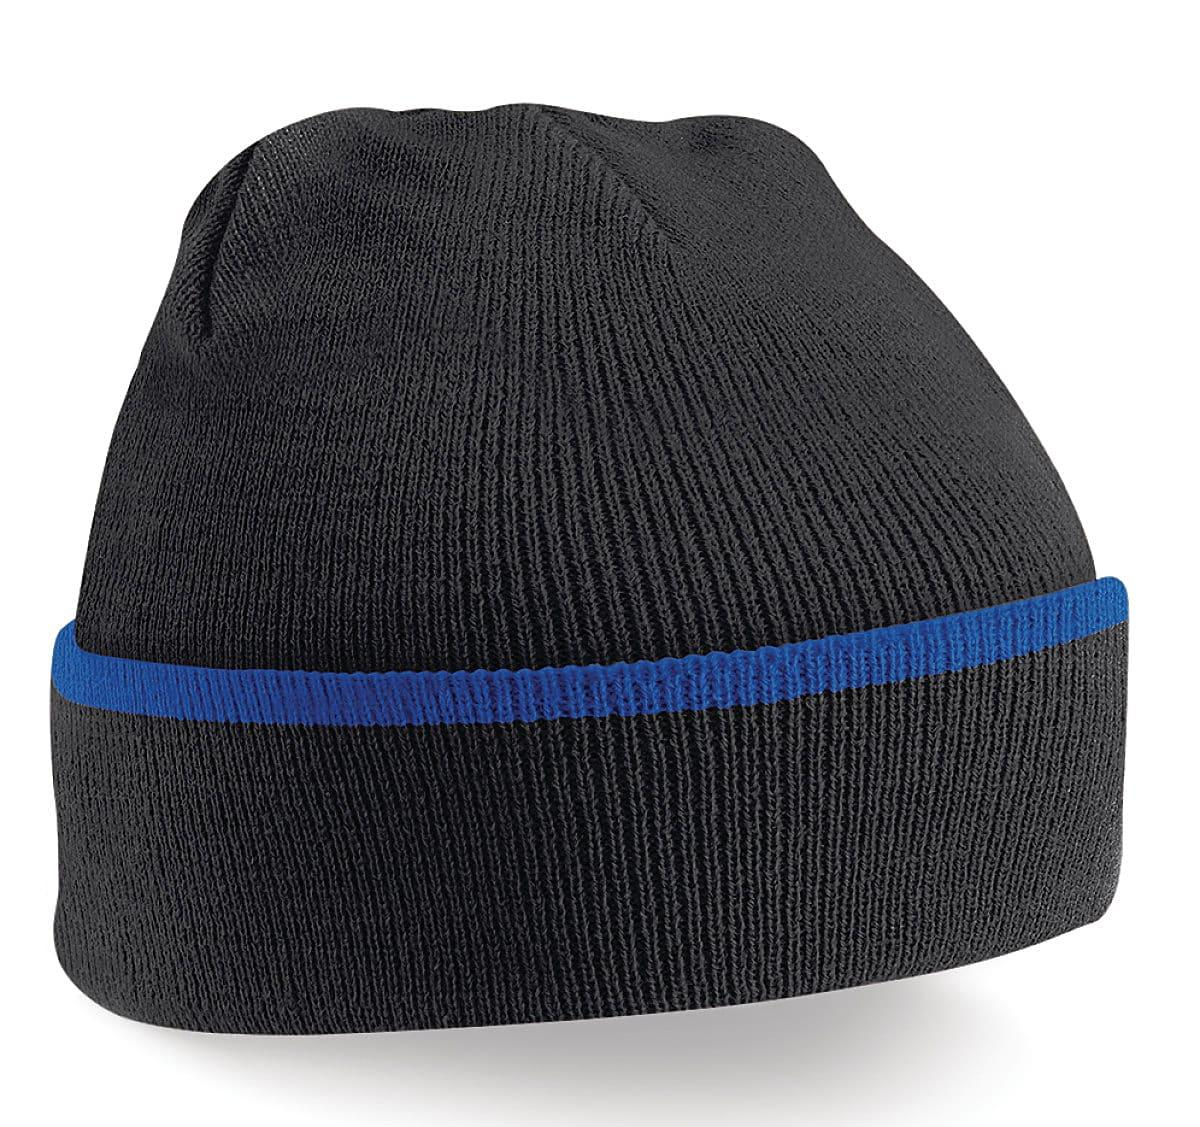 Beechfield Teamwear Beanie Hat in Black / Bright Royal (Product Code: B471)